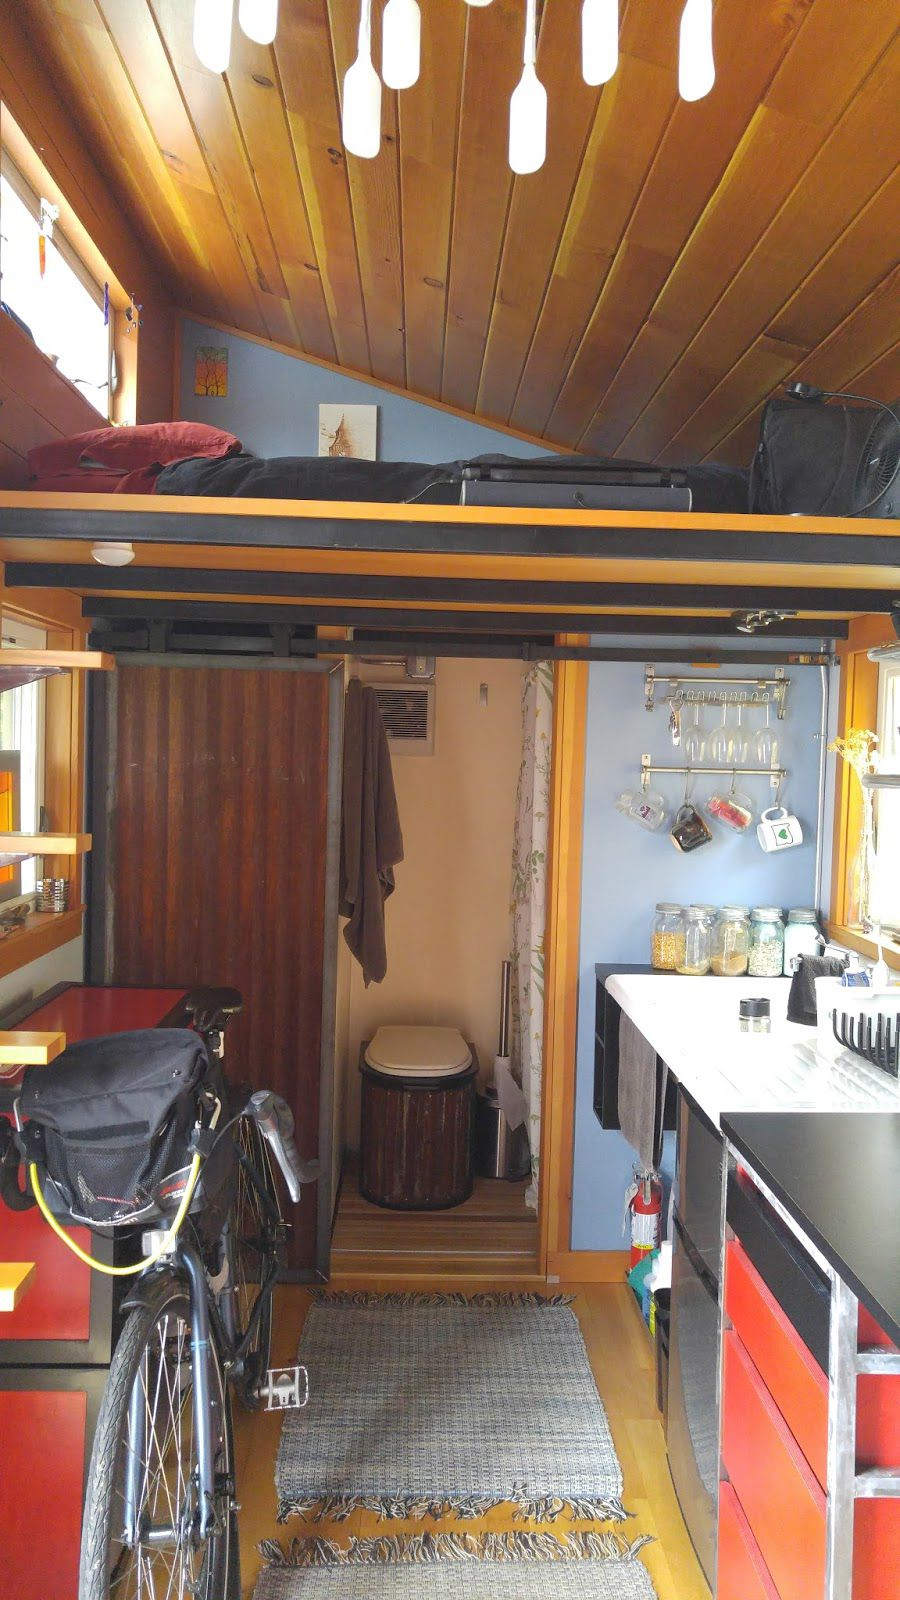 This Self Built Tiny House Is Approximately 100 Square Feet On The Main Floor And 50 Square Feet In The Lof Tiny House Living Small Tiny House Tiny House Cabin